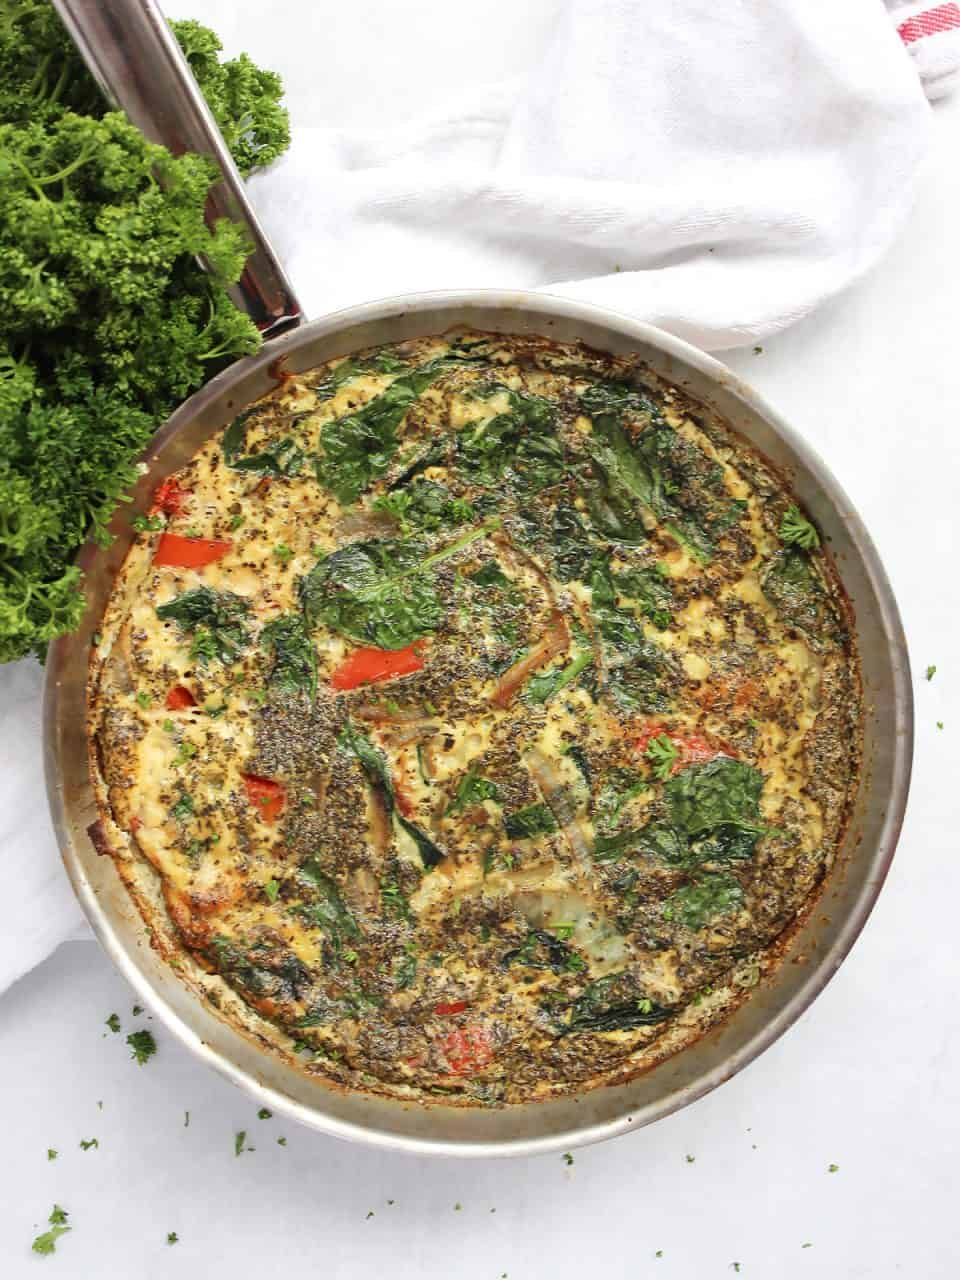 Vegetable and egg white frittata in a silver skillet.